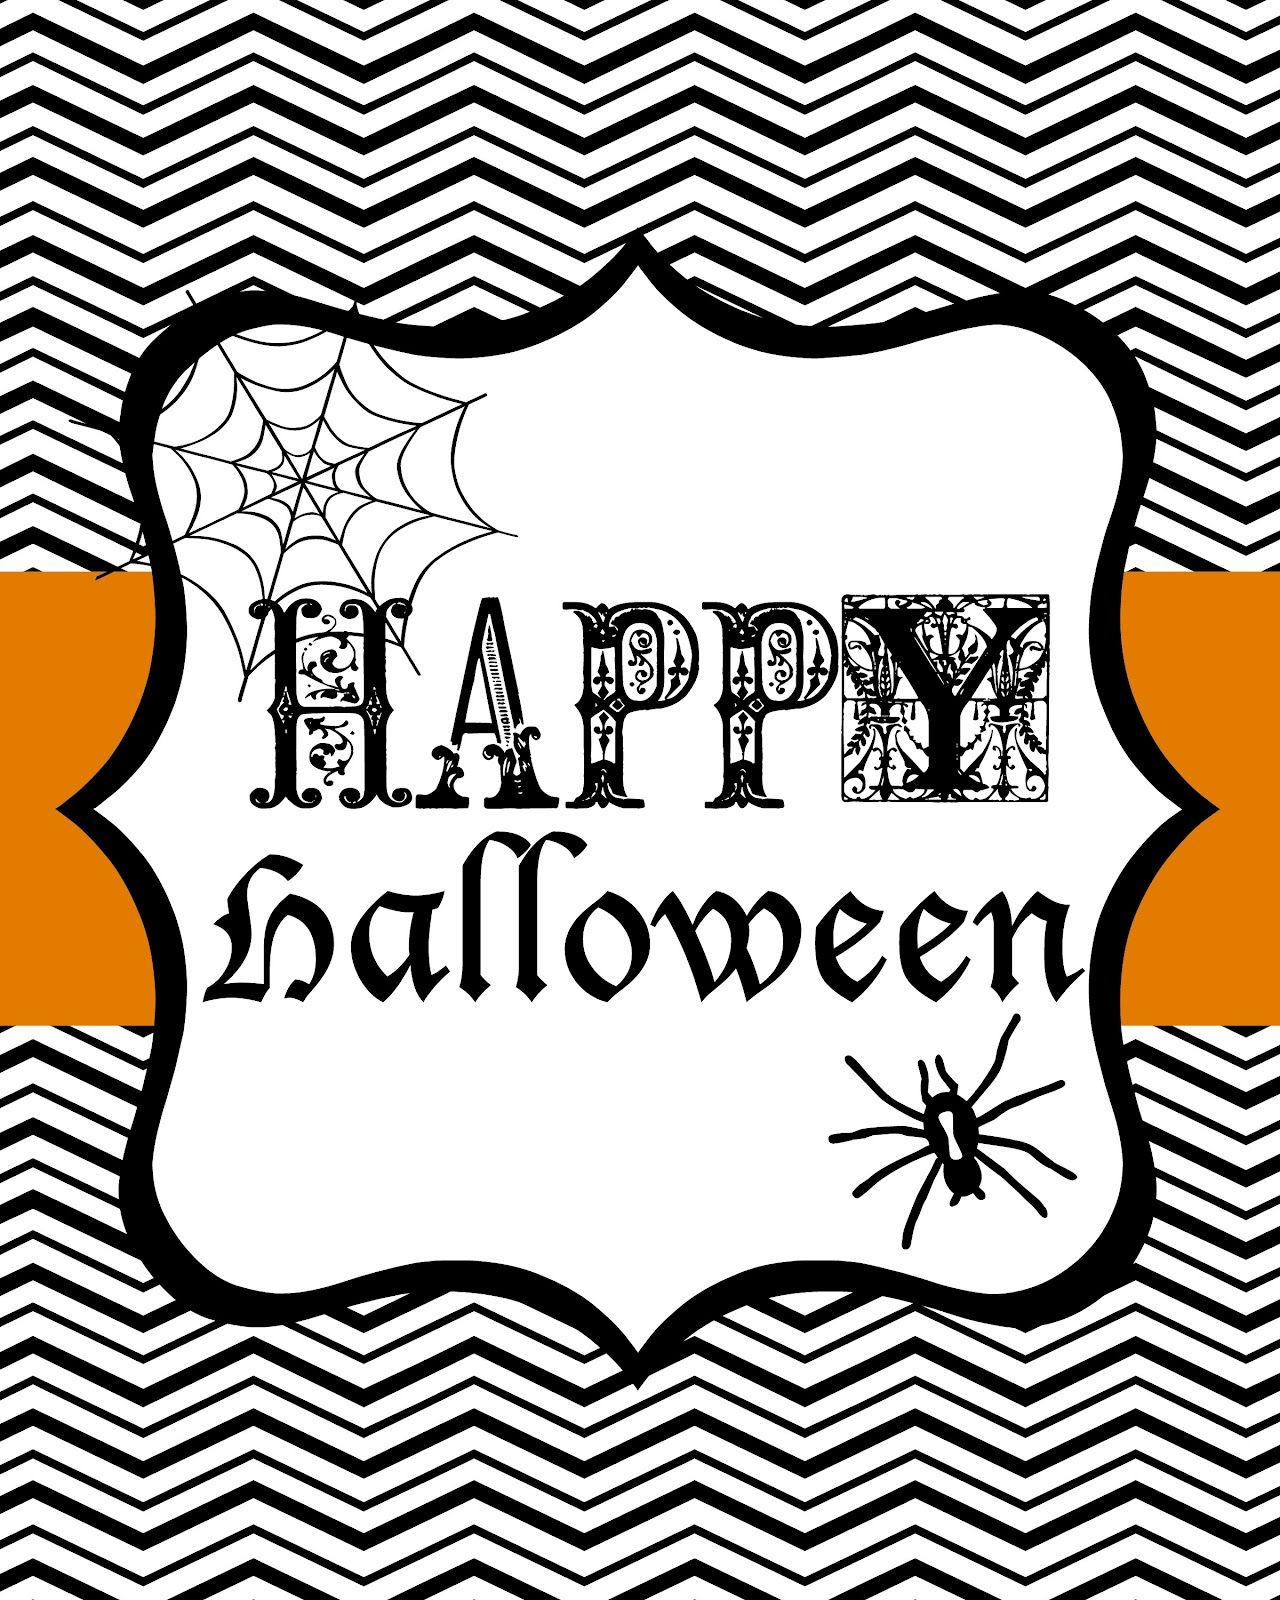 Happy Halloween to all of you!! Have a safe & fun day with